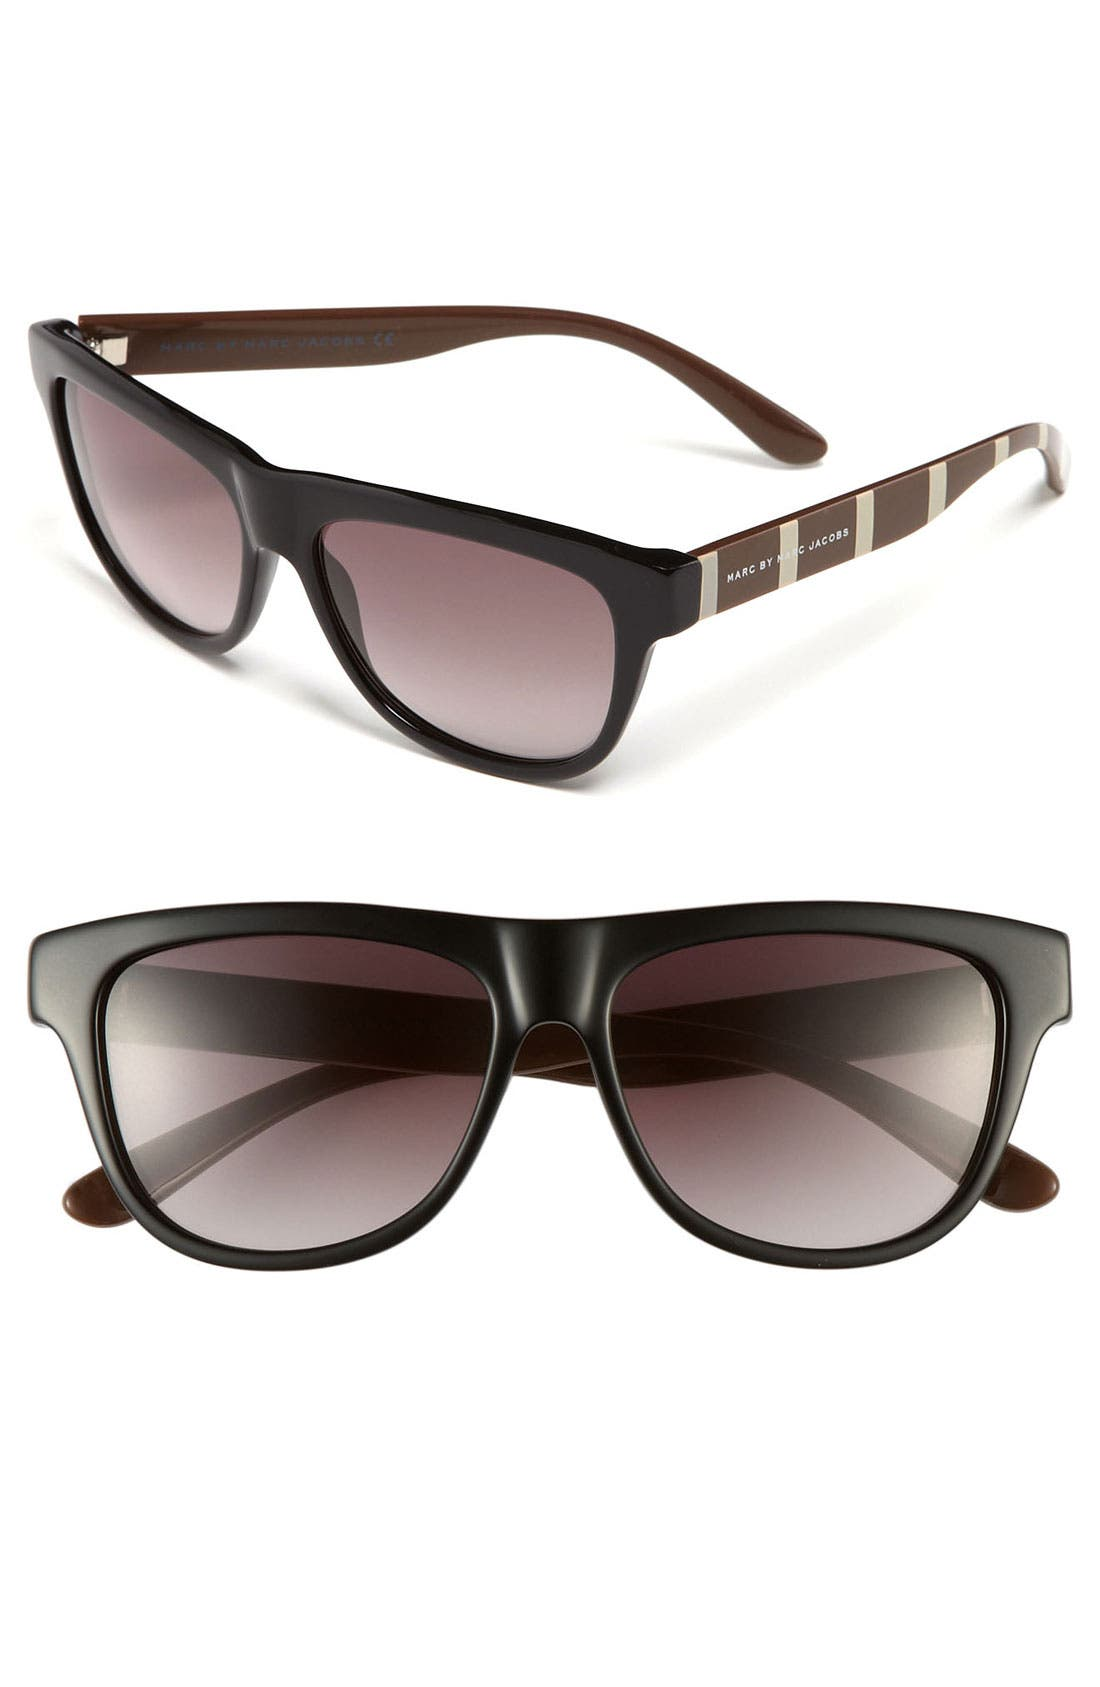 Alternate Image 1 Selected - MARC BY MARC JACOBS 55mm Retro Sunglasses